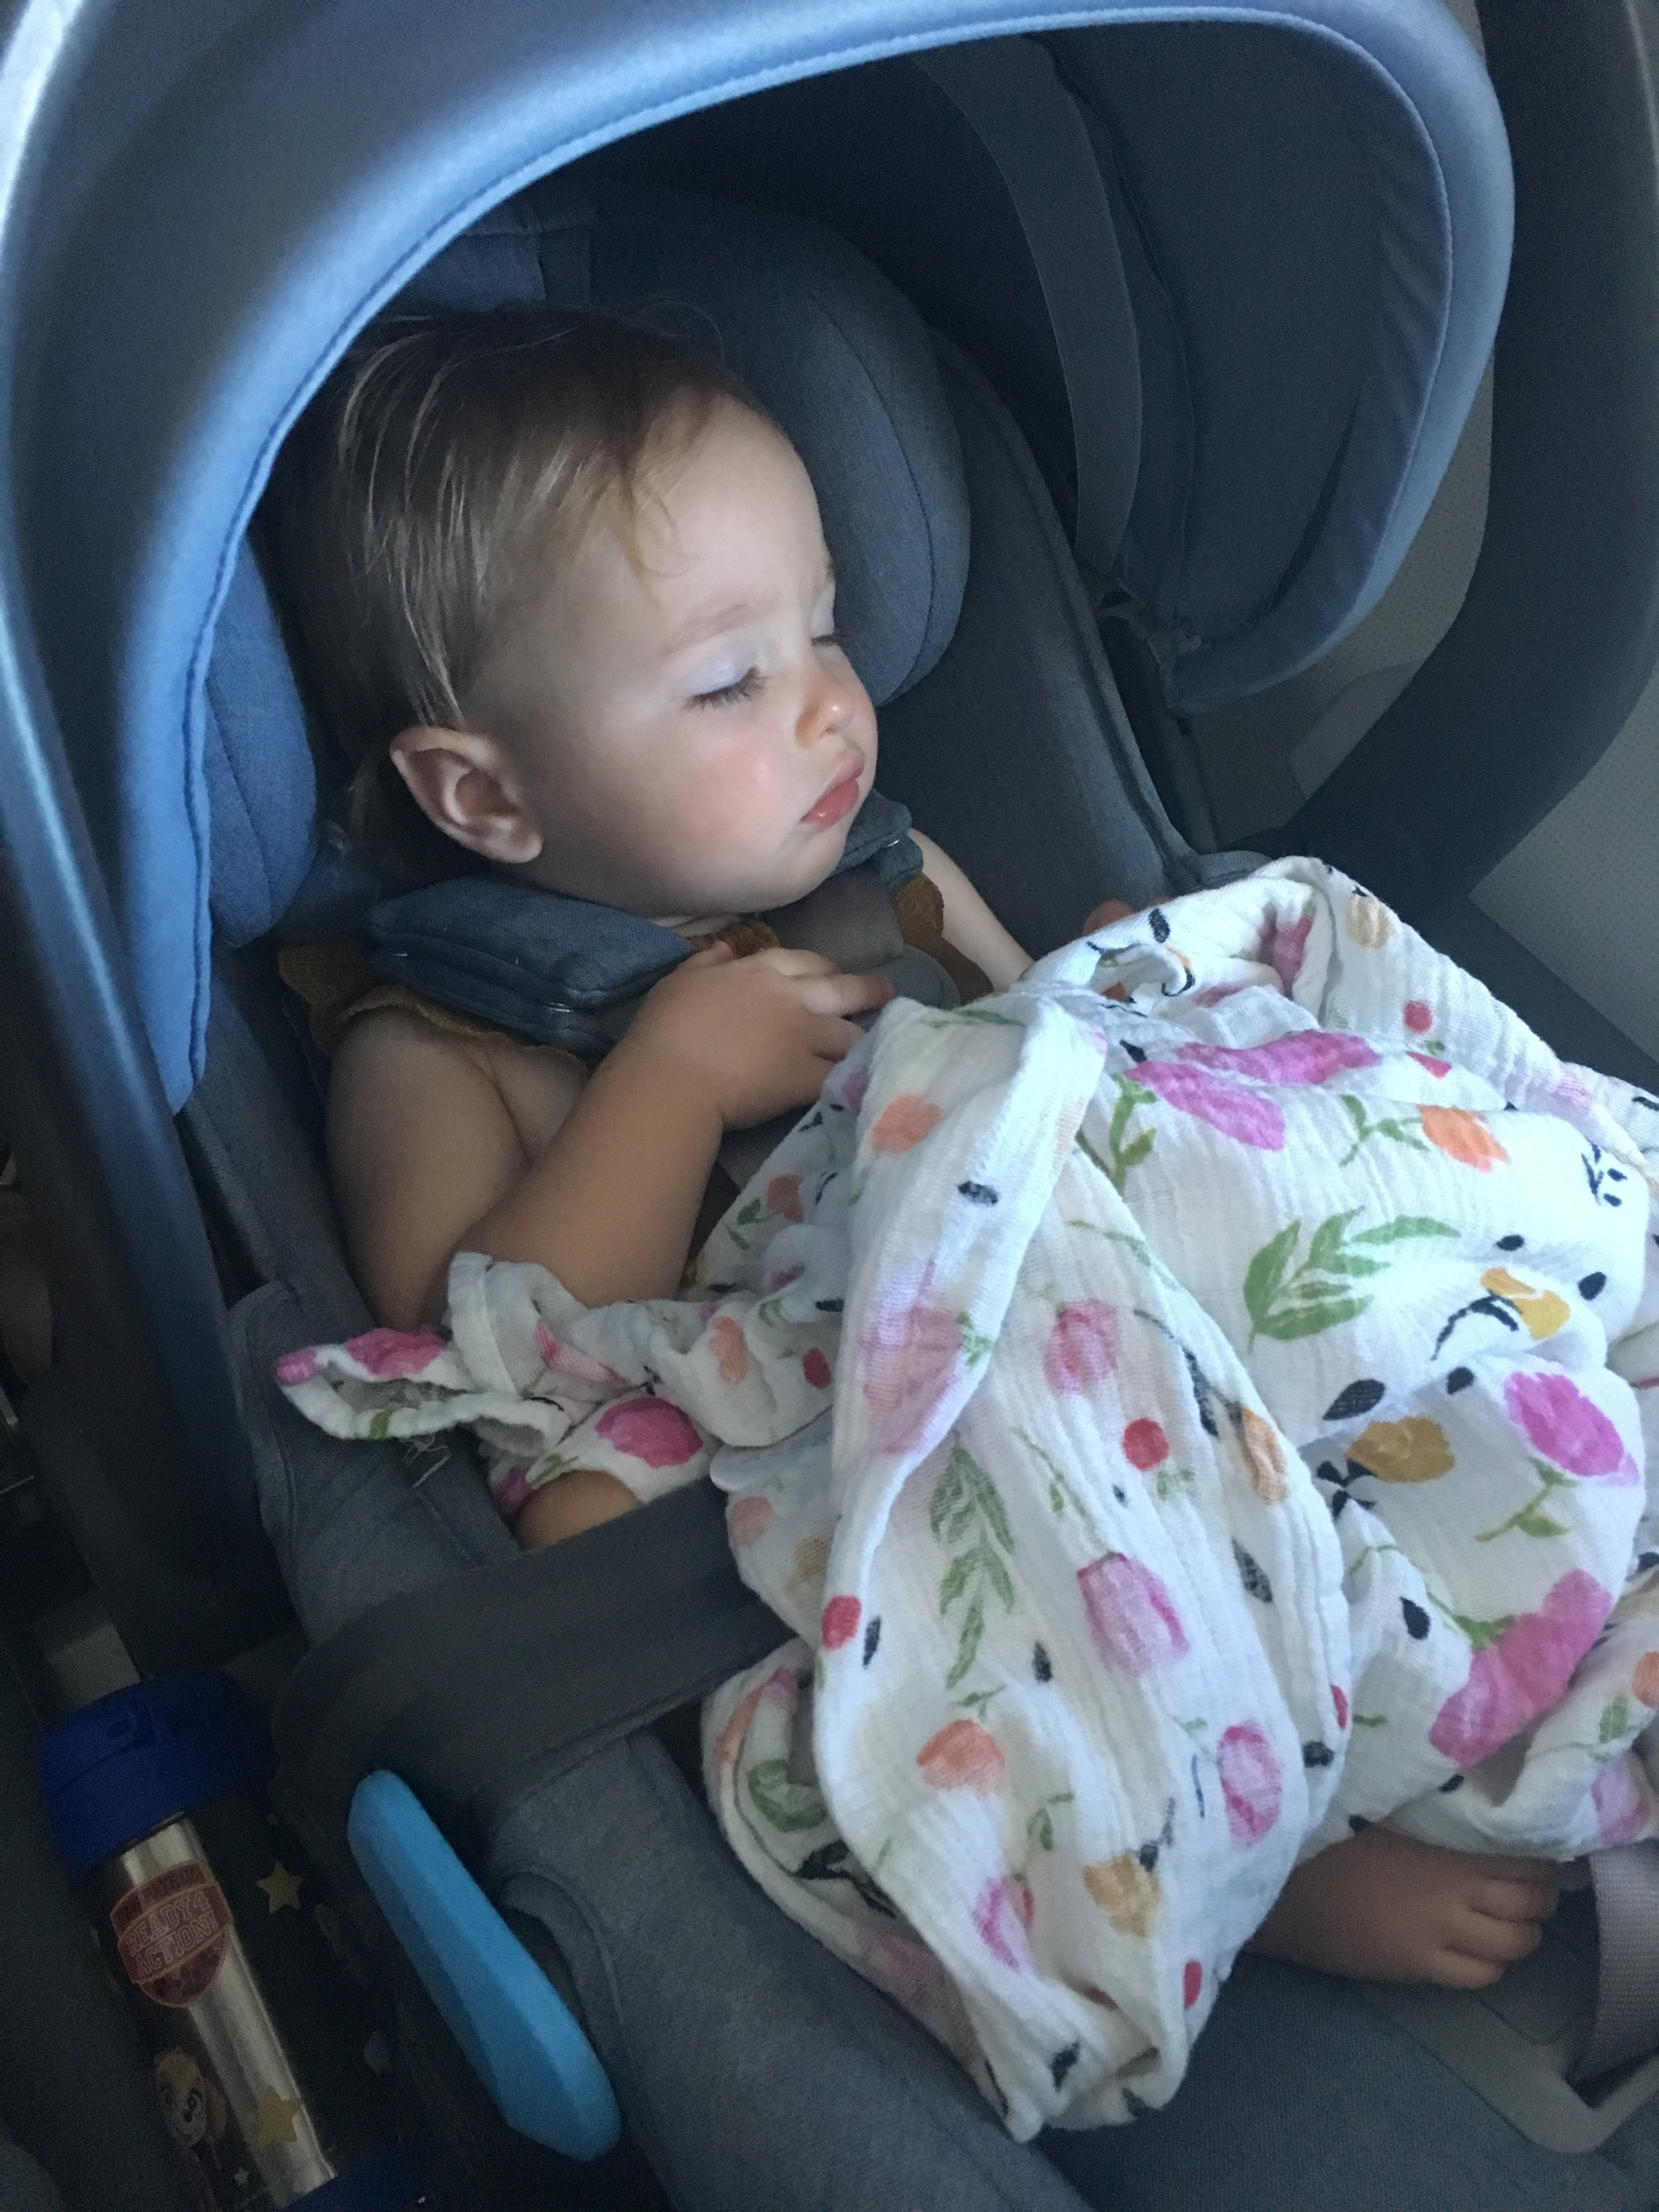 My older infant sleeping the flight away in her car seat.